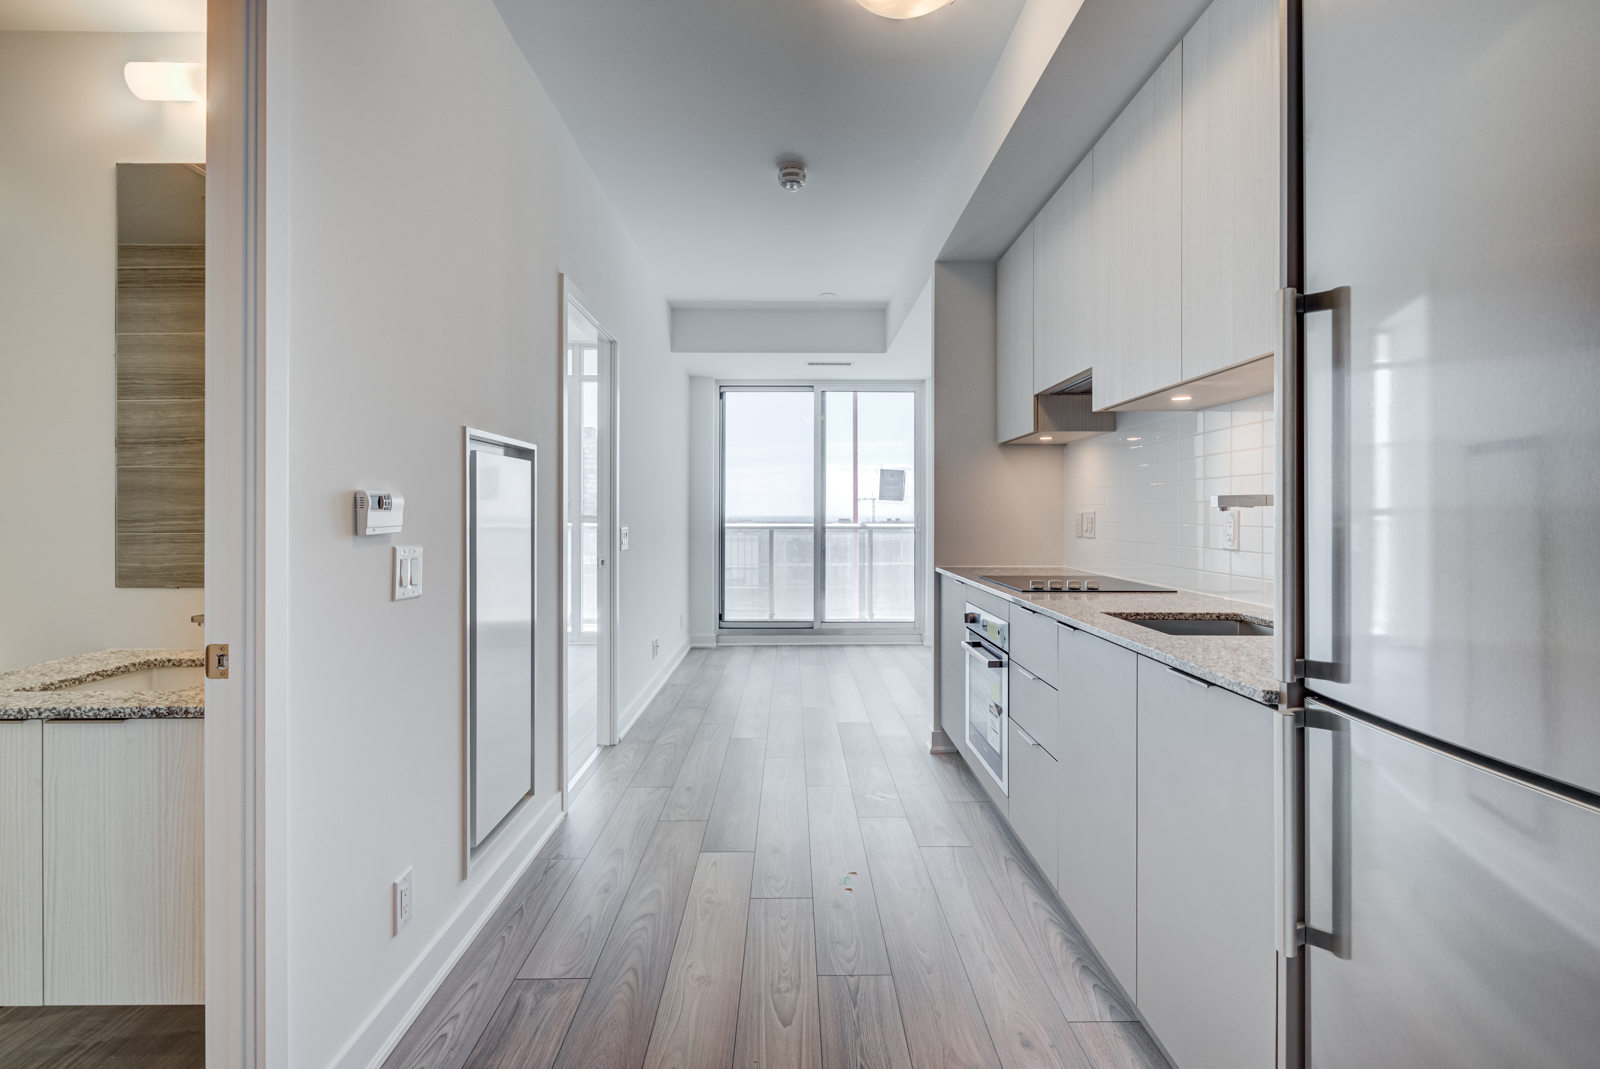 Condo with laminate floors and light gray walls.